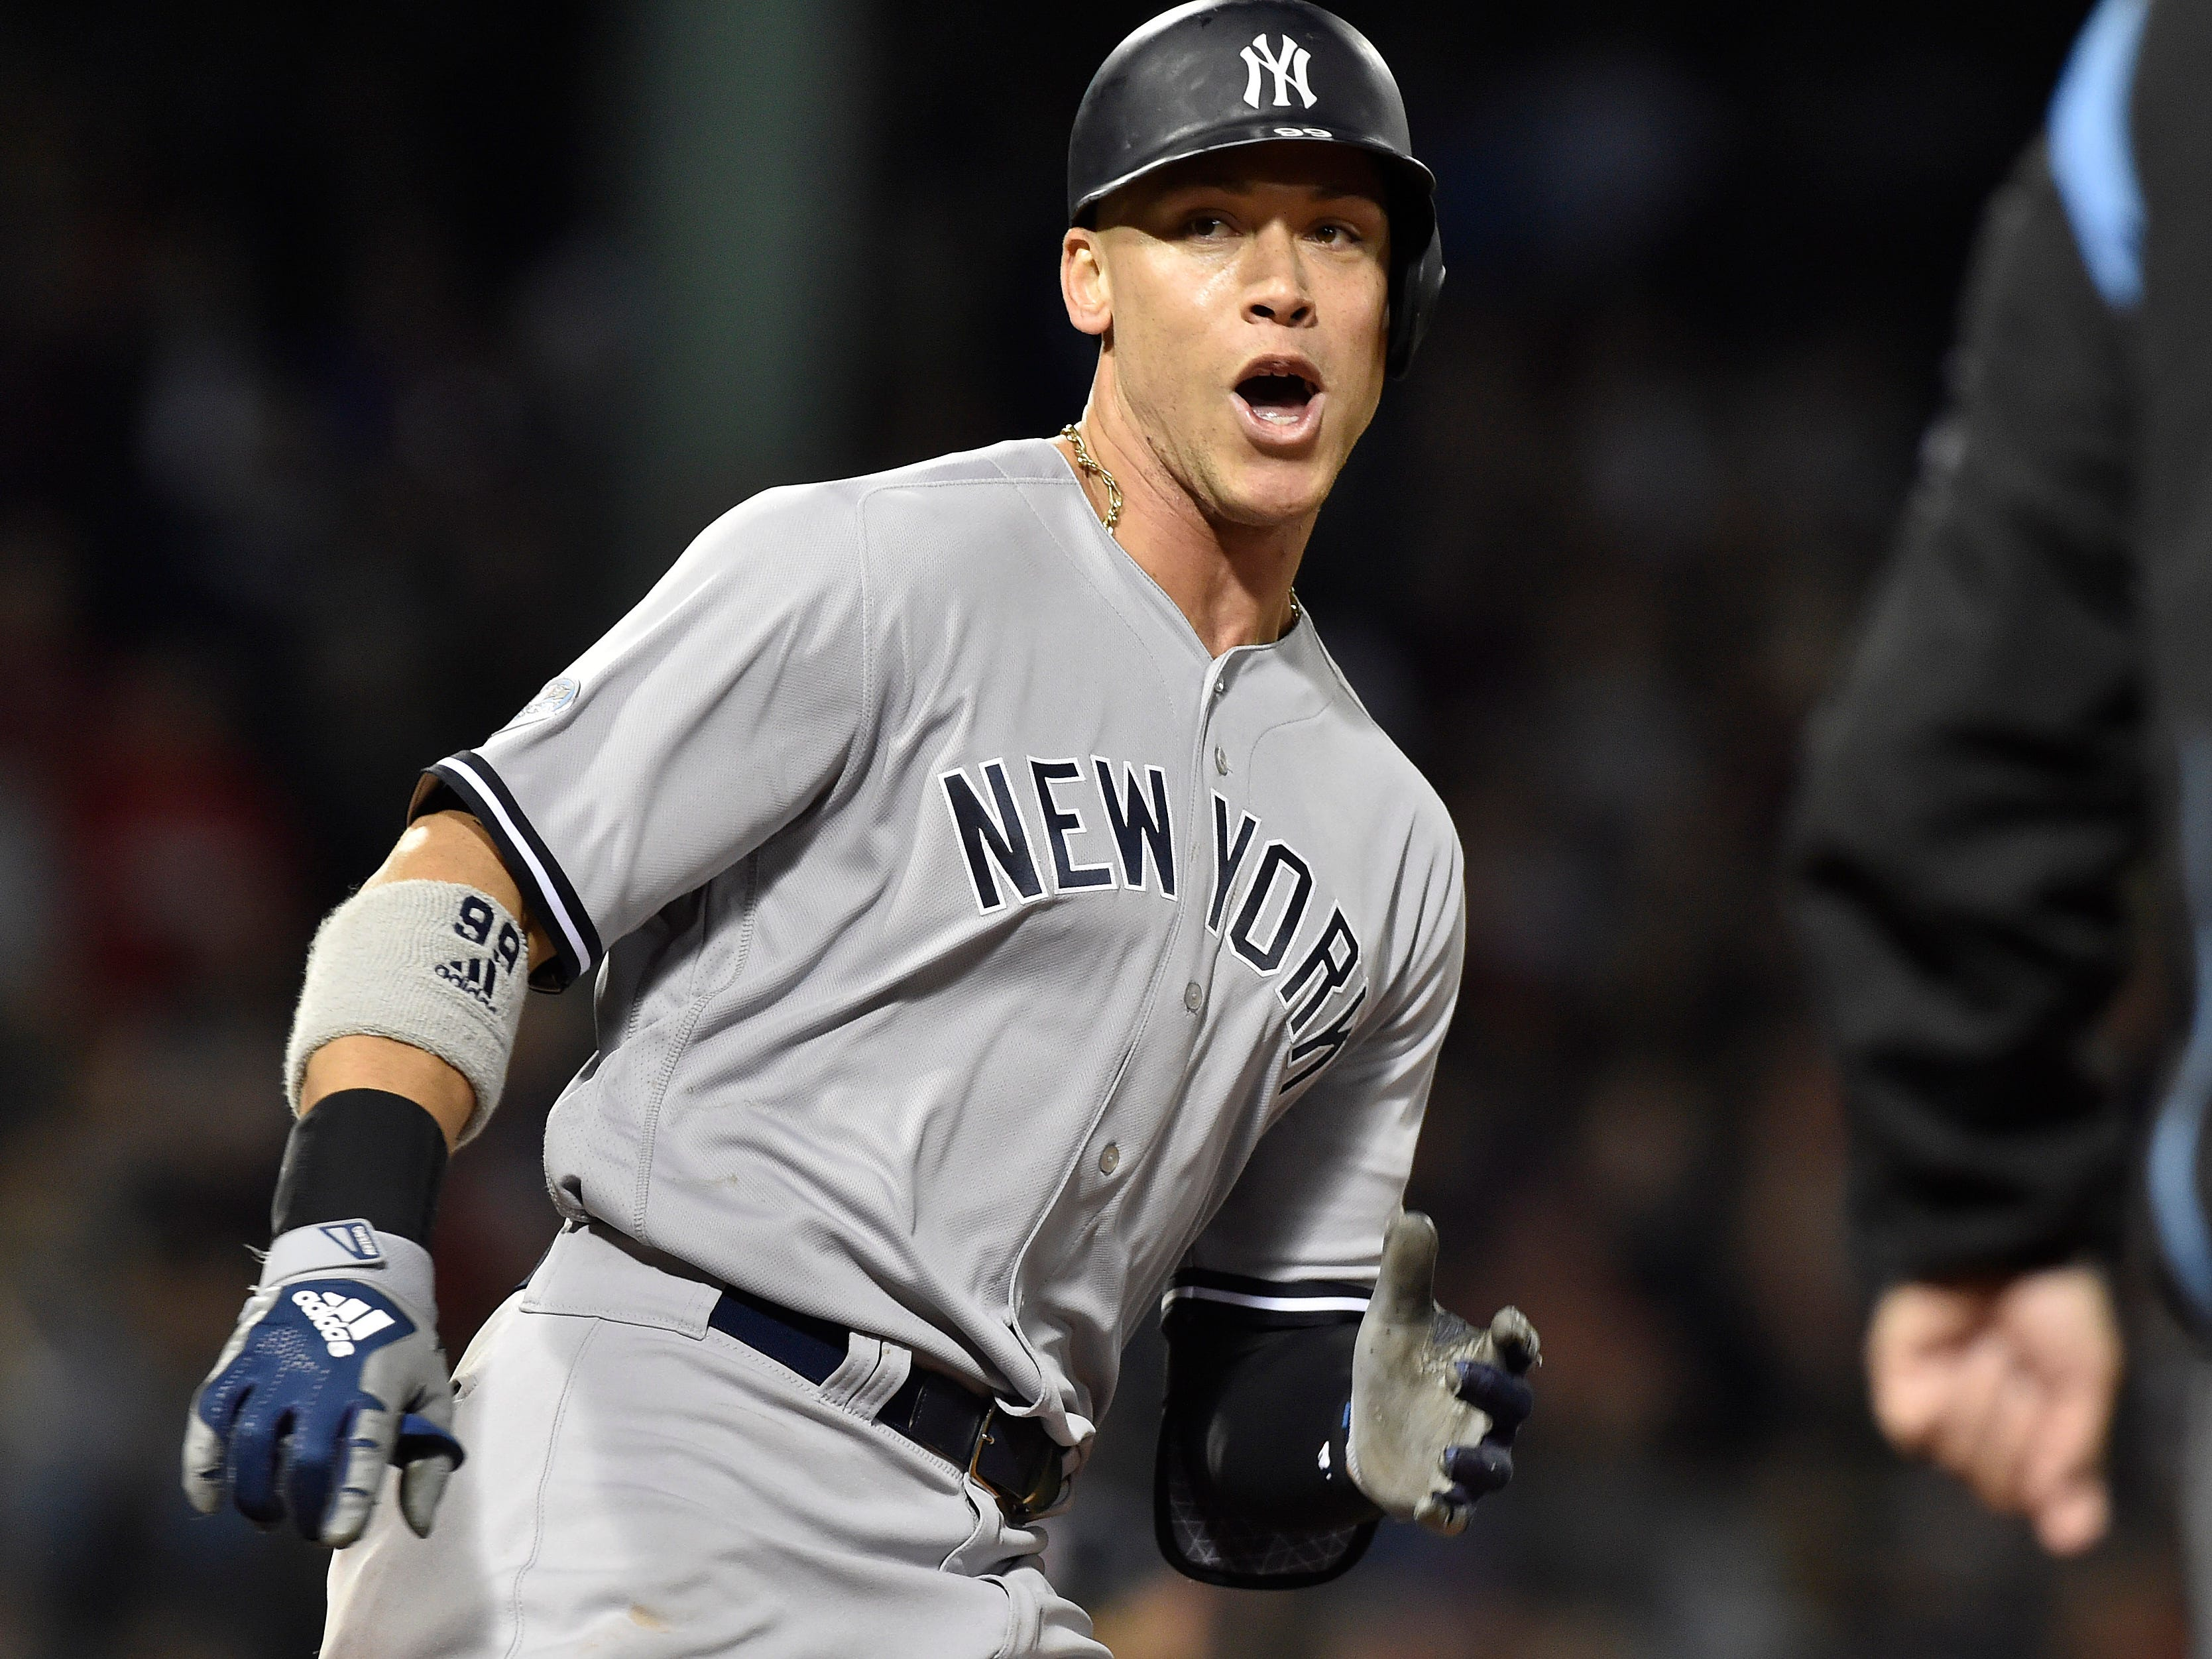 ALDS Game 1: Yankees right fielder Aaron Judge rounds the bases after a home run in the ninth inning.